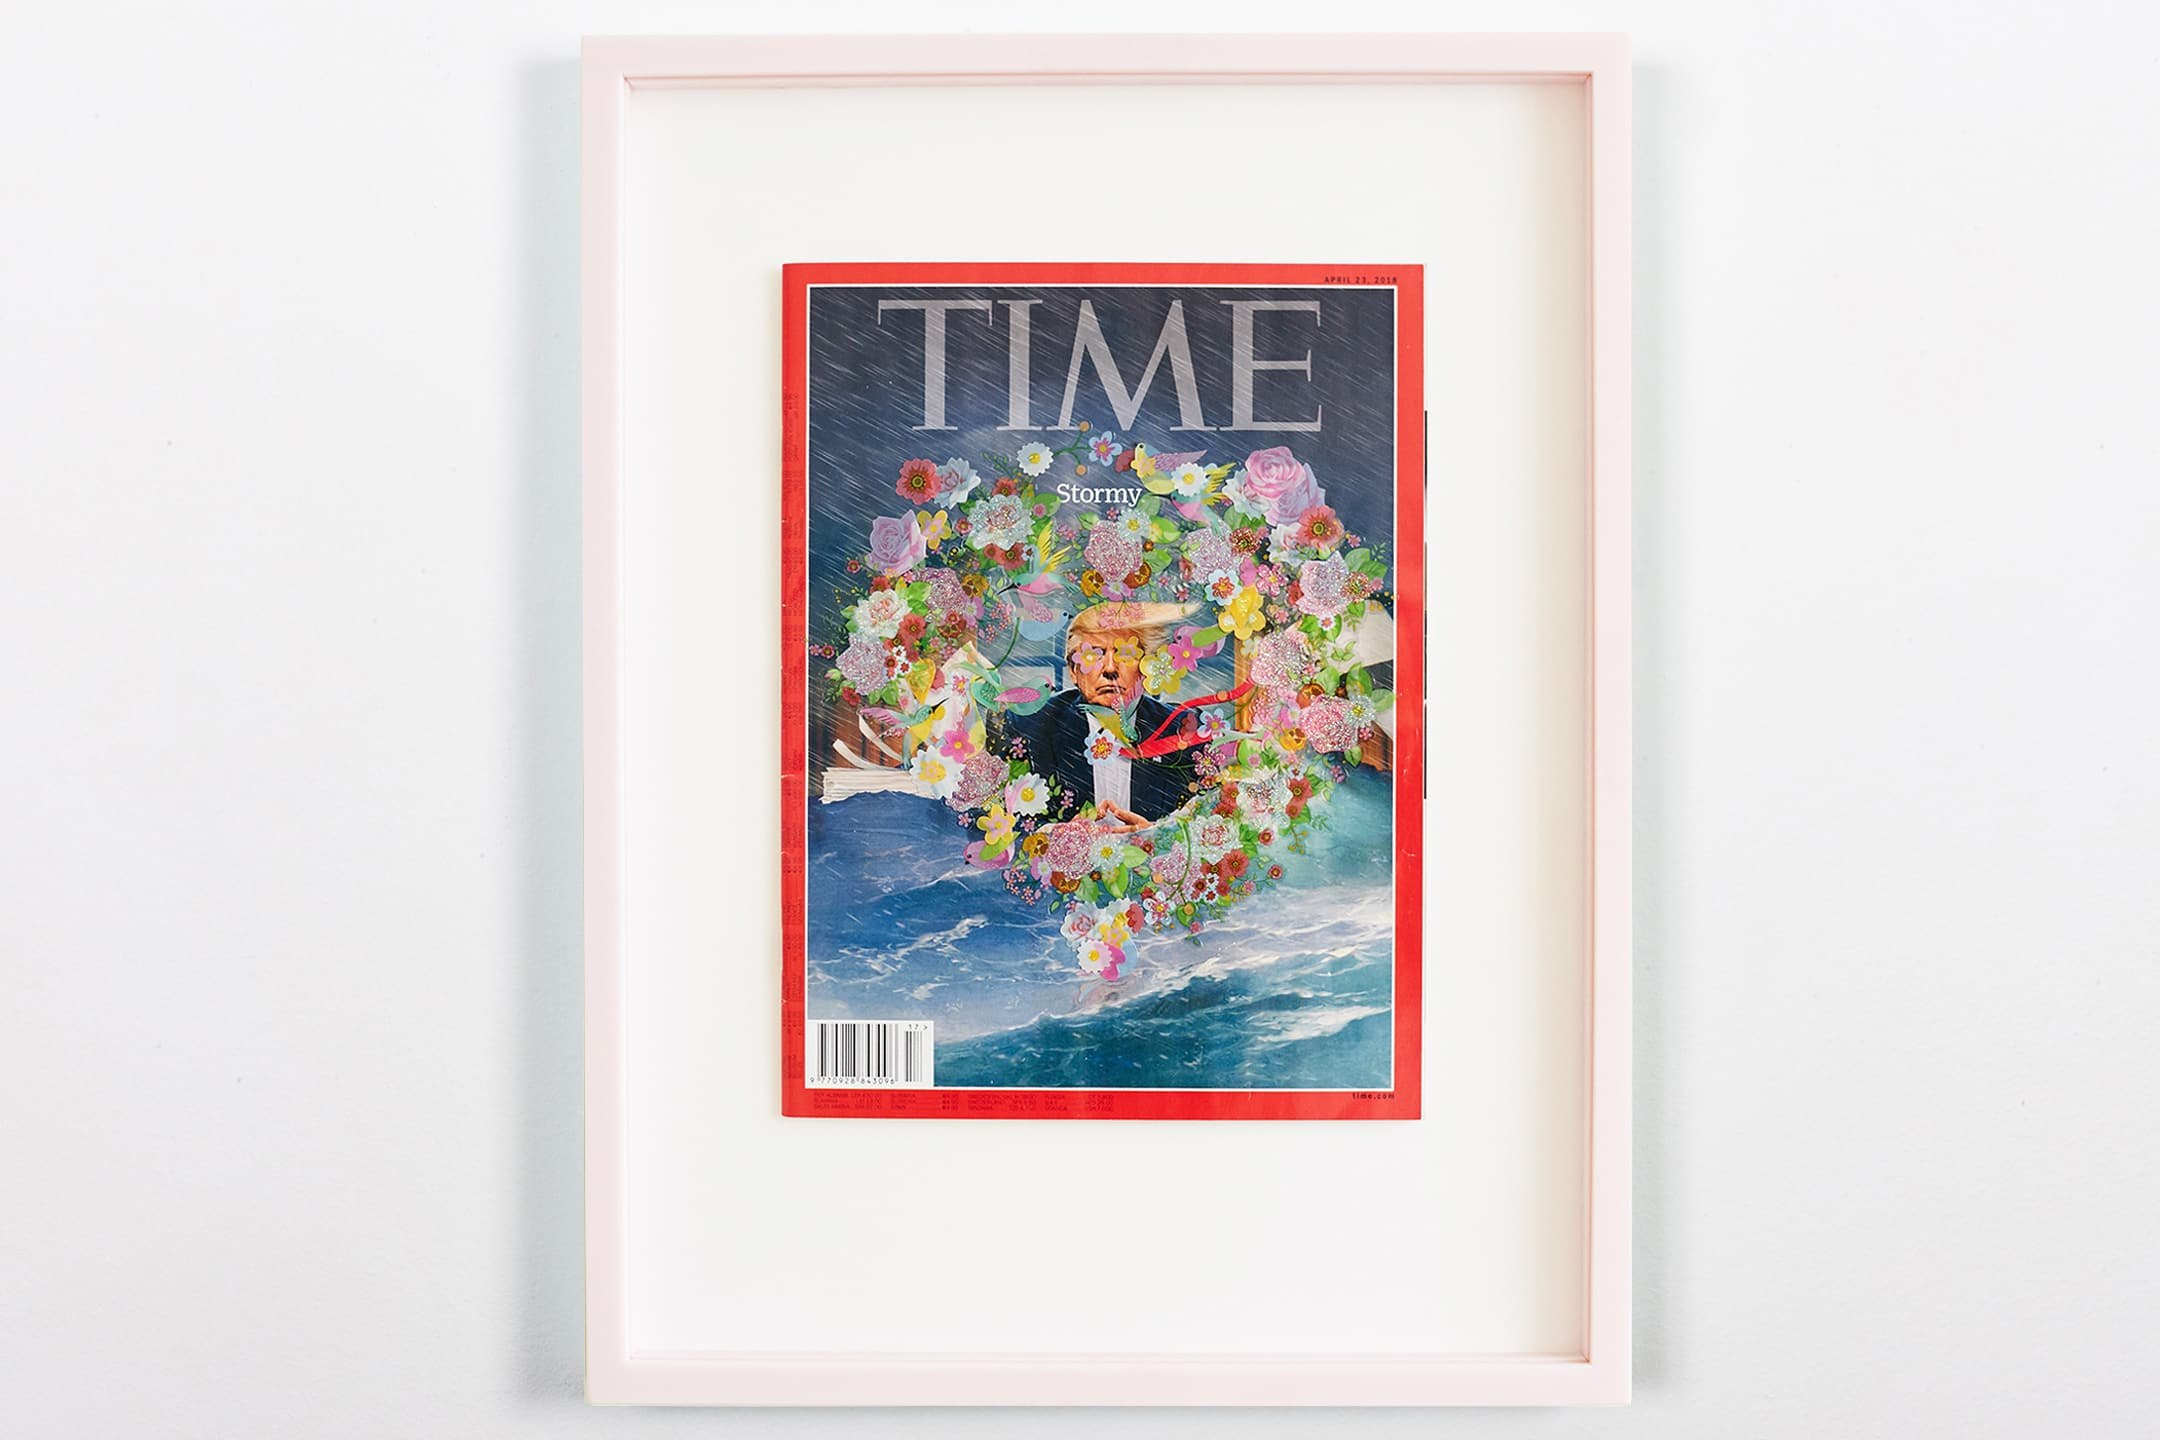 SOME-TIME 1816, 2018